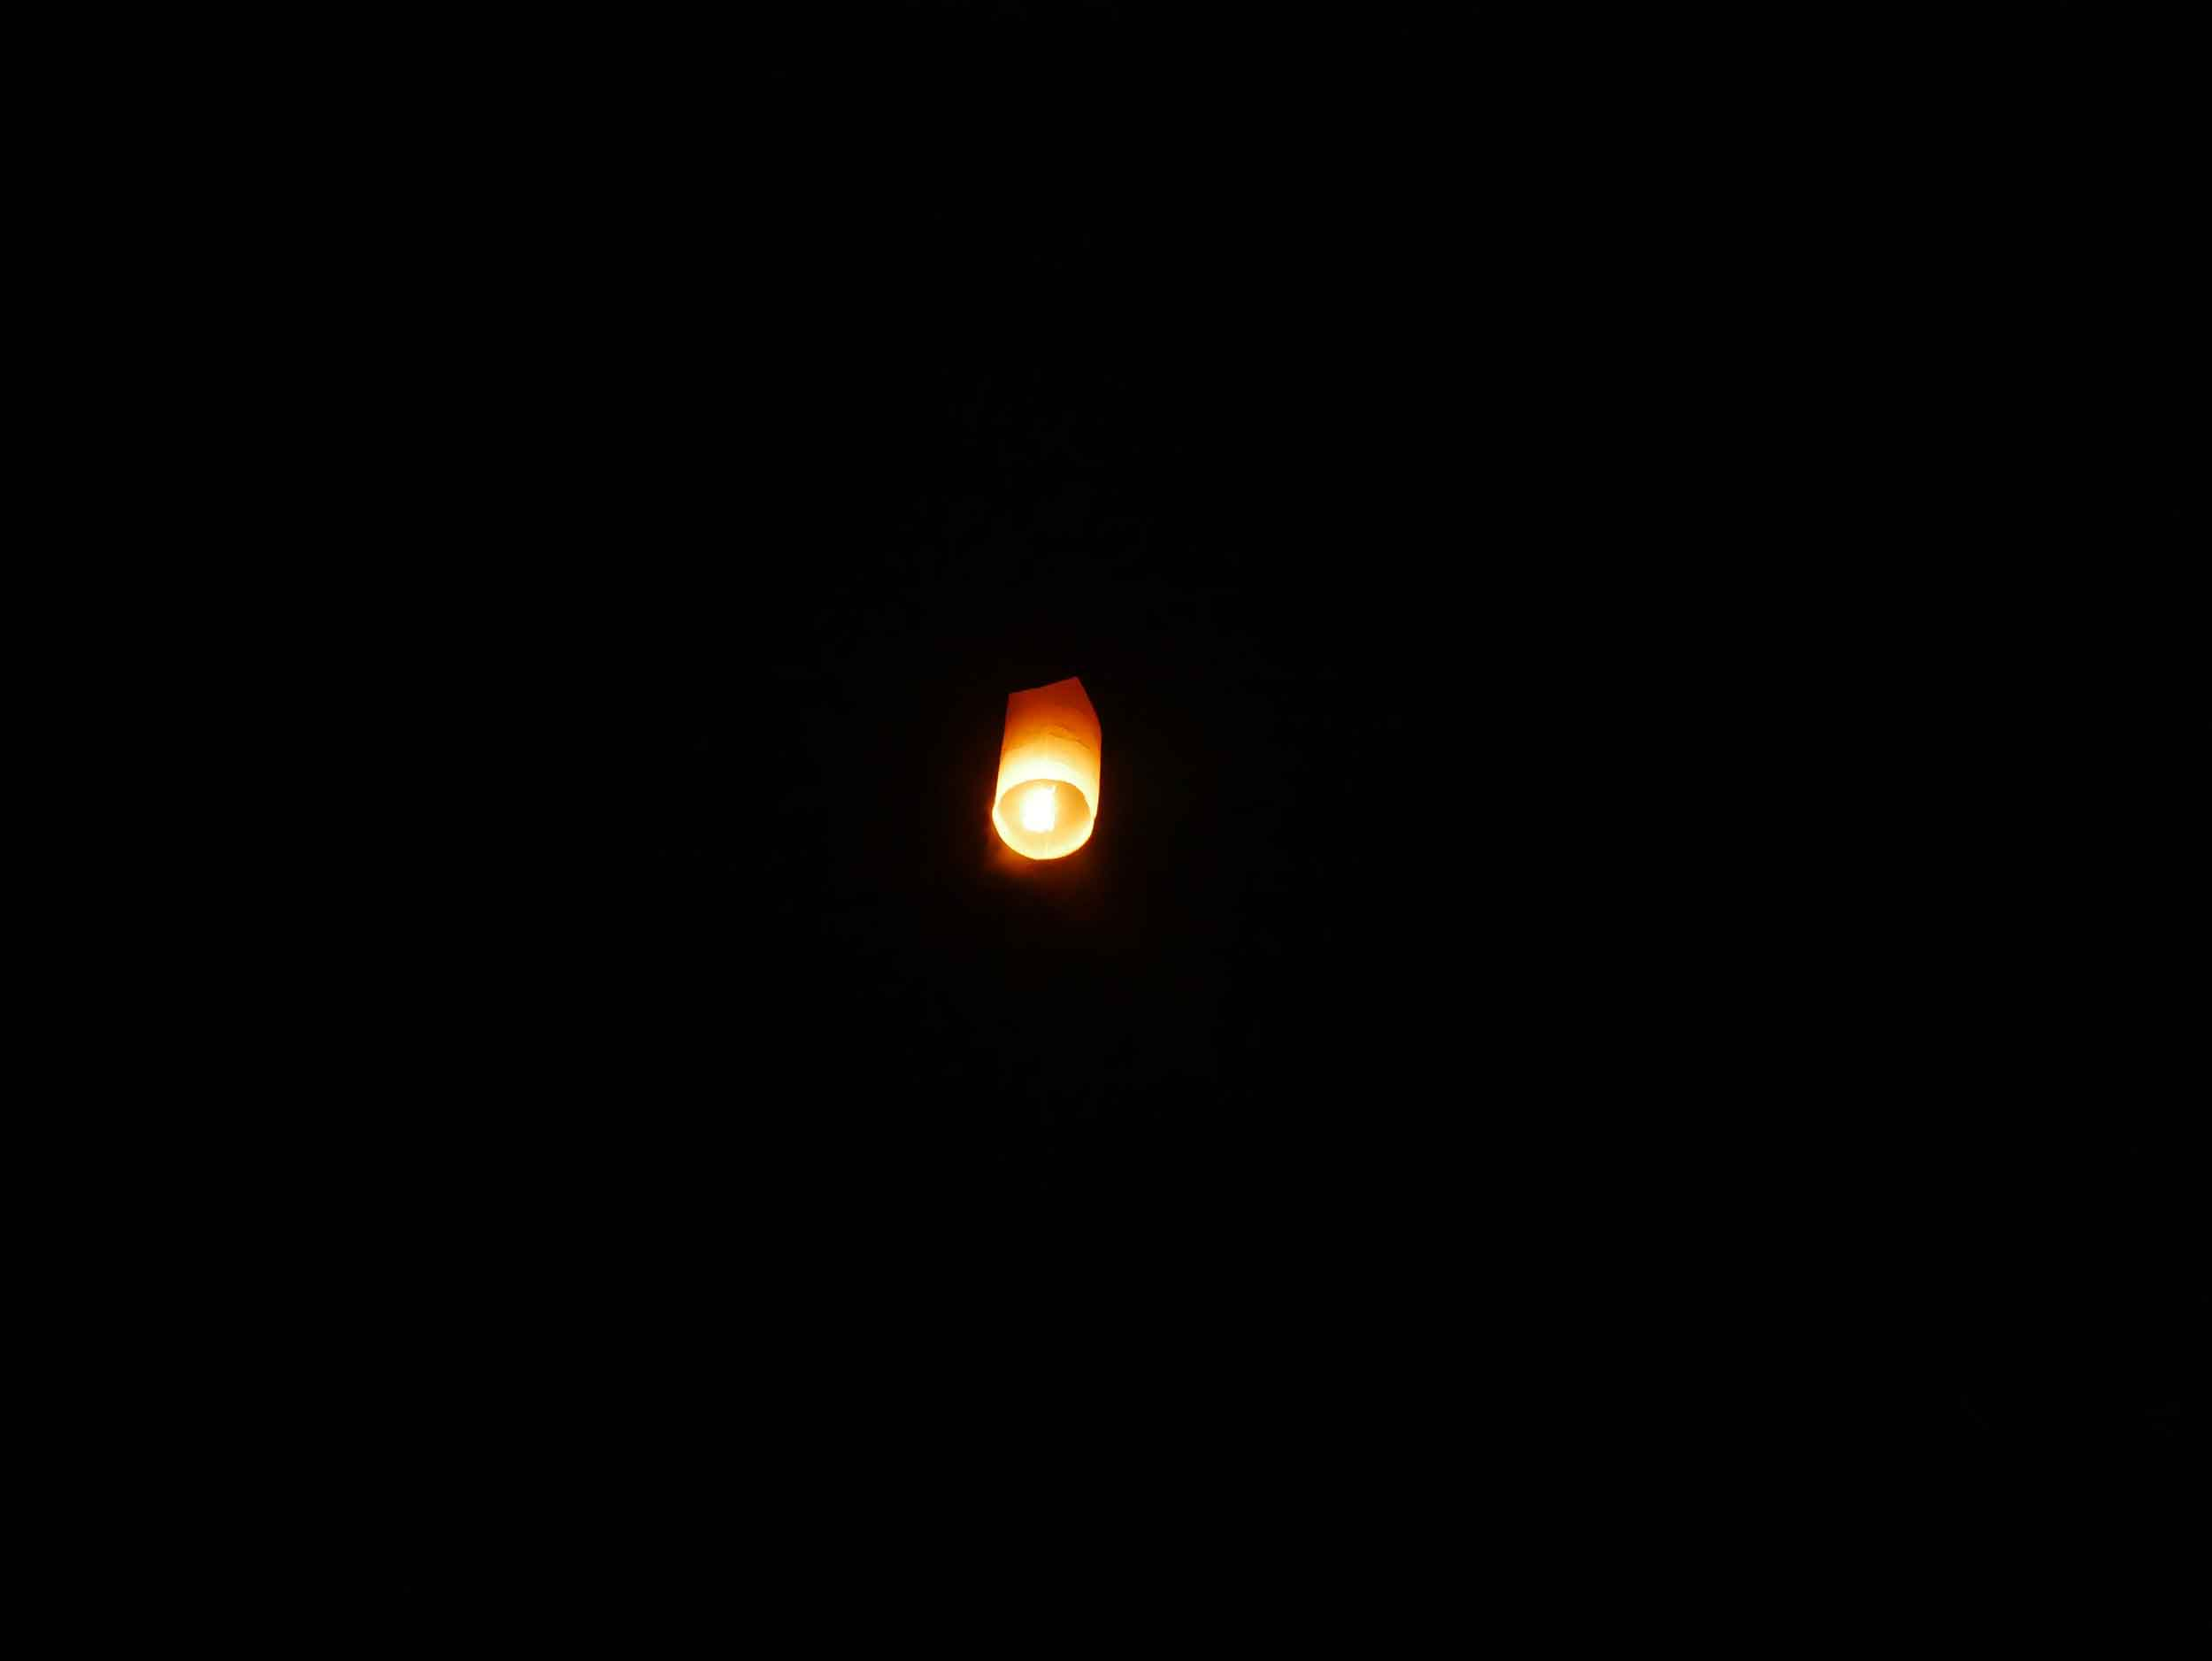 As we released the lantern, we made a wish for the future.